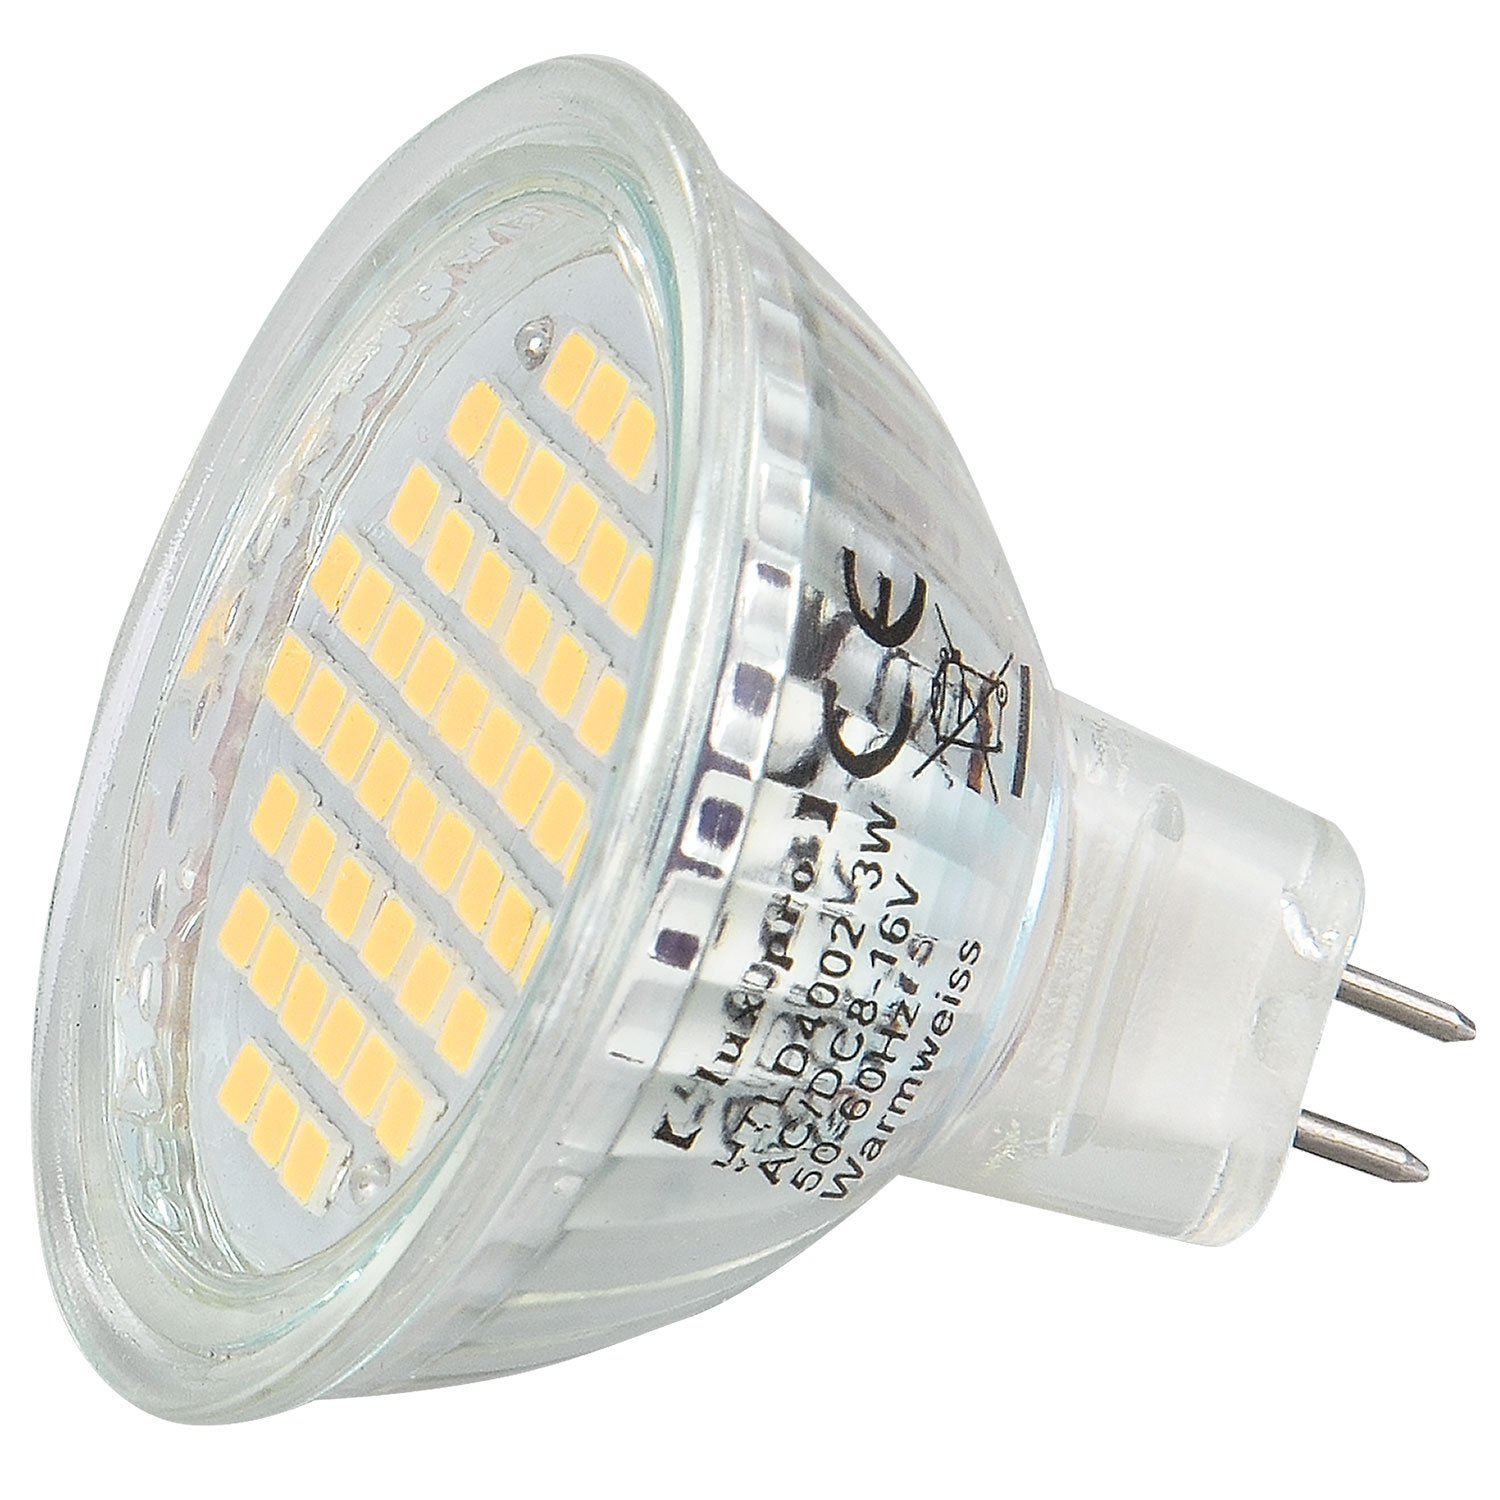 716MFUEZW7L._SL1500_ Wunderbar Led Mr11 Gu4 Warmweiss Dekorationen